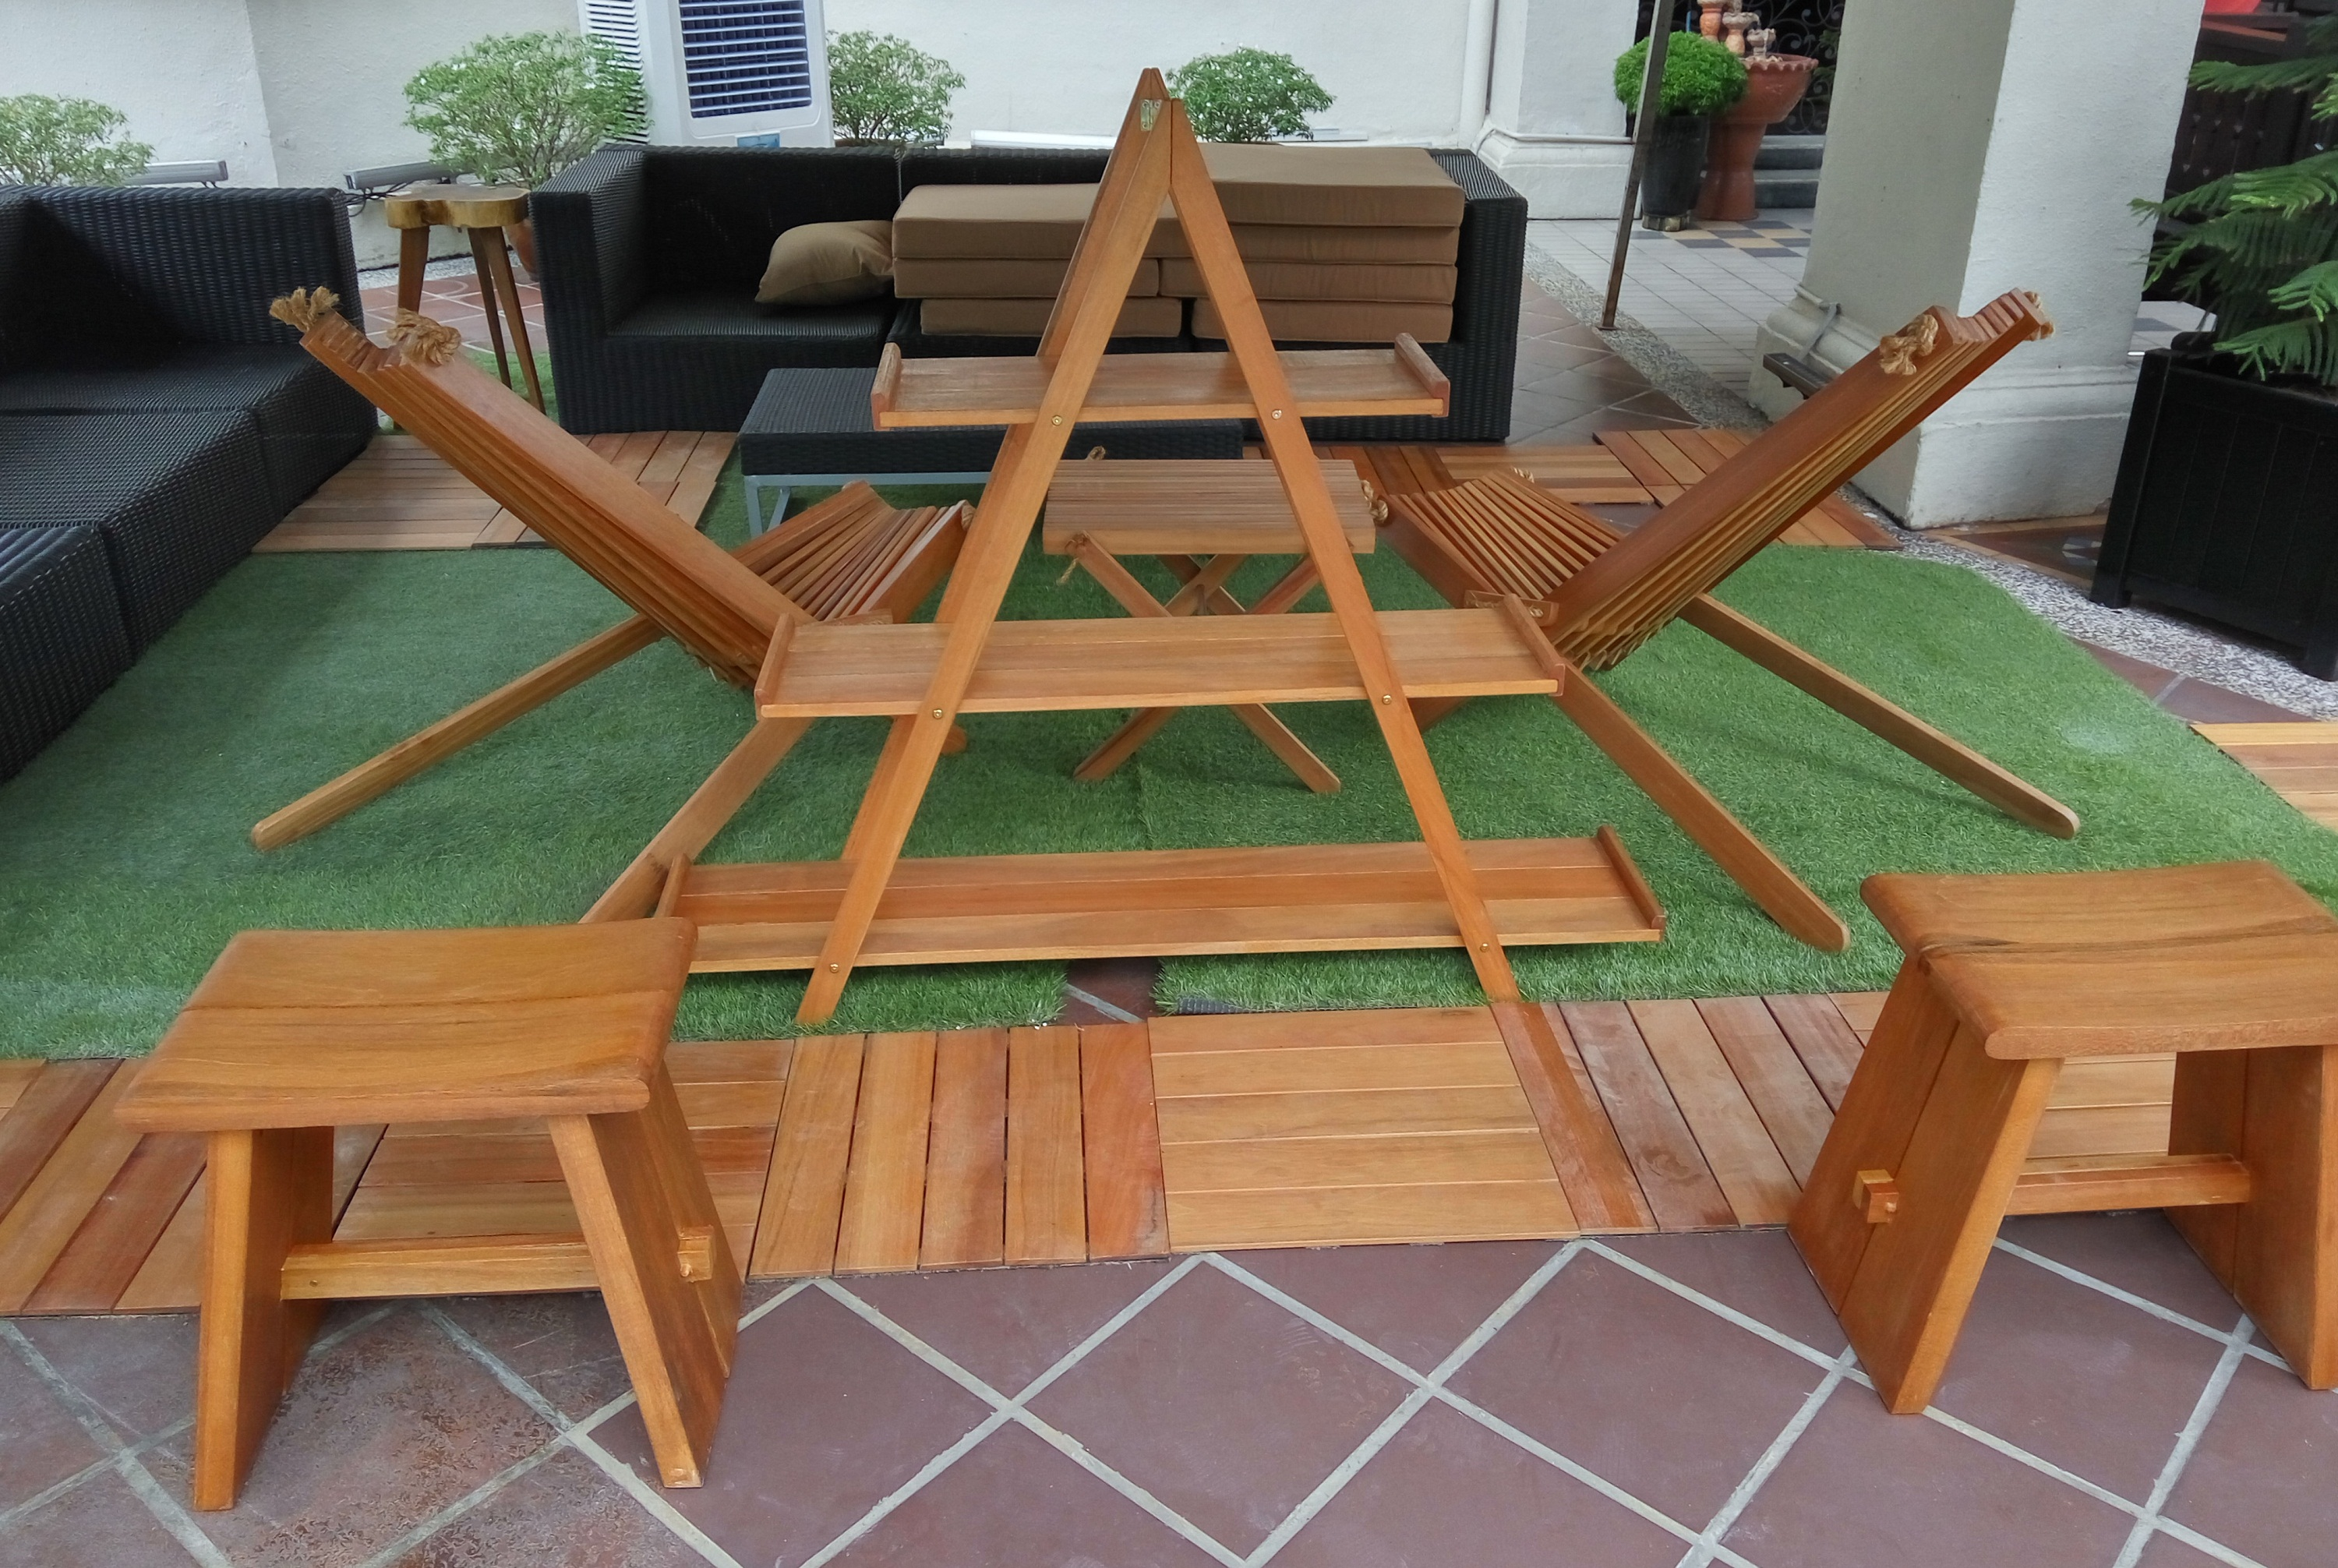 Balau Wood, Balau Furniture, Balau Furniture Malaysia ...